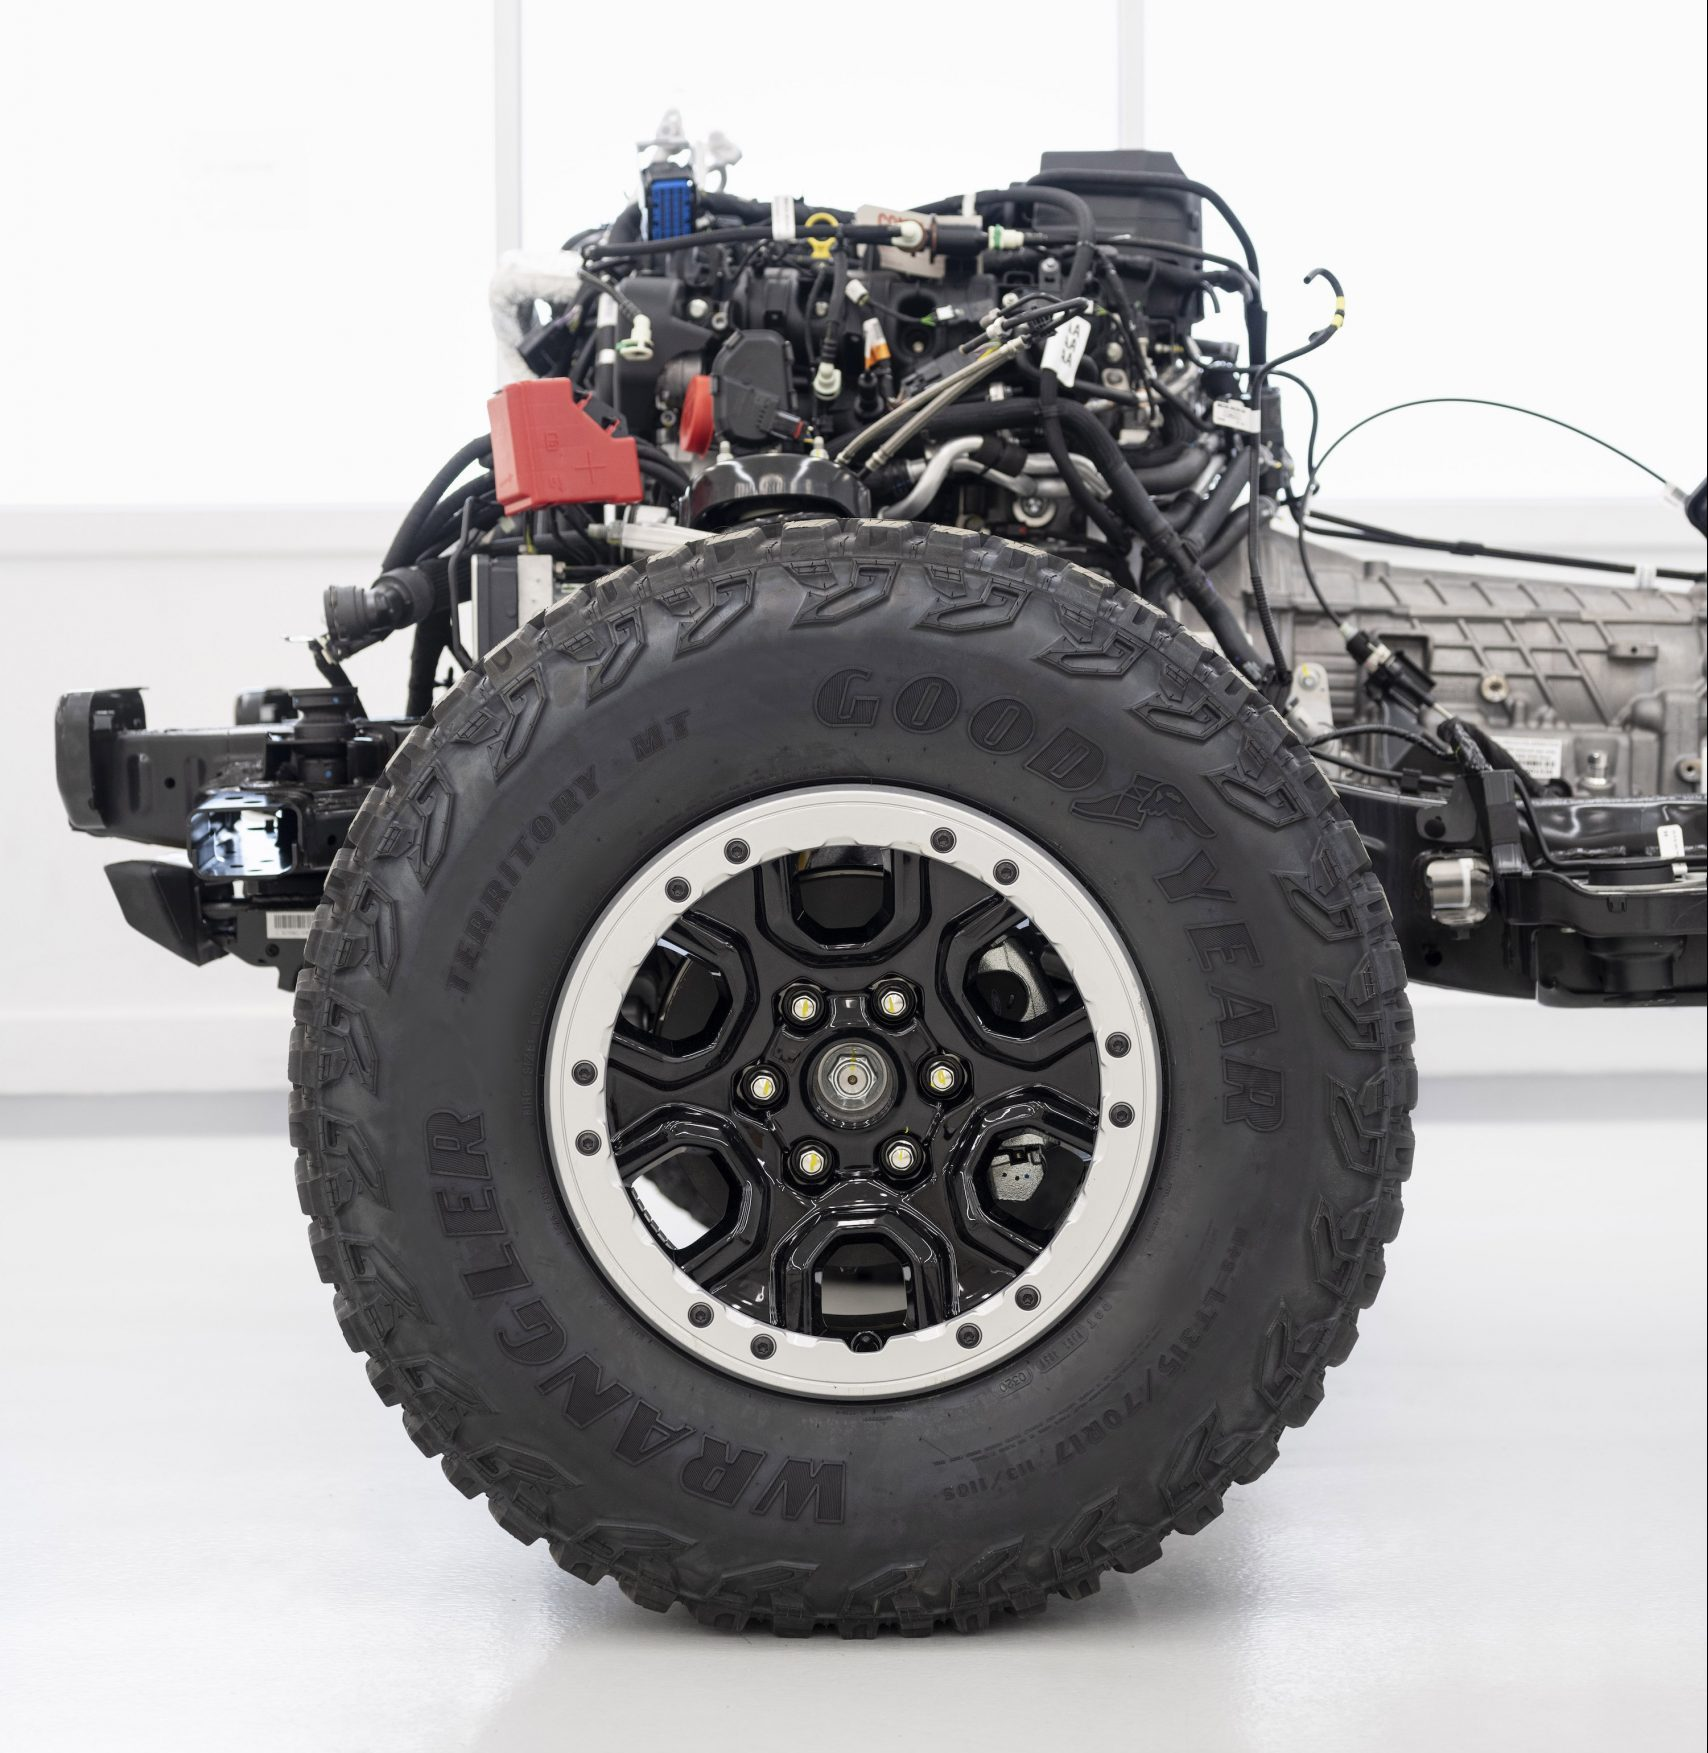 2021 Ford Bronco Front Chassis and Engine Side Profile